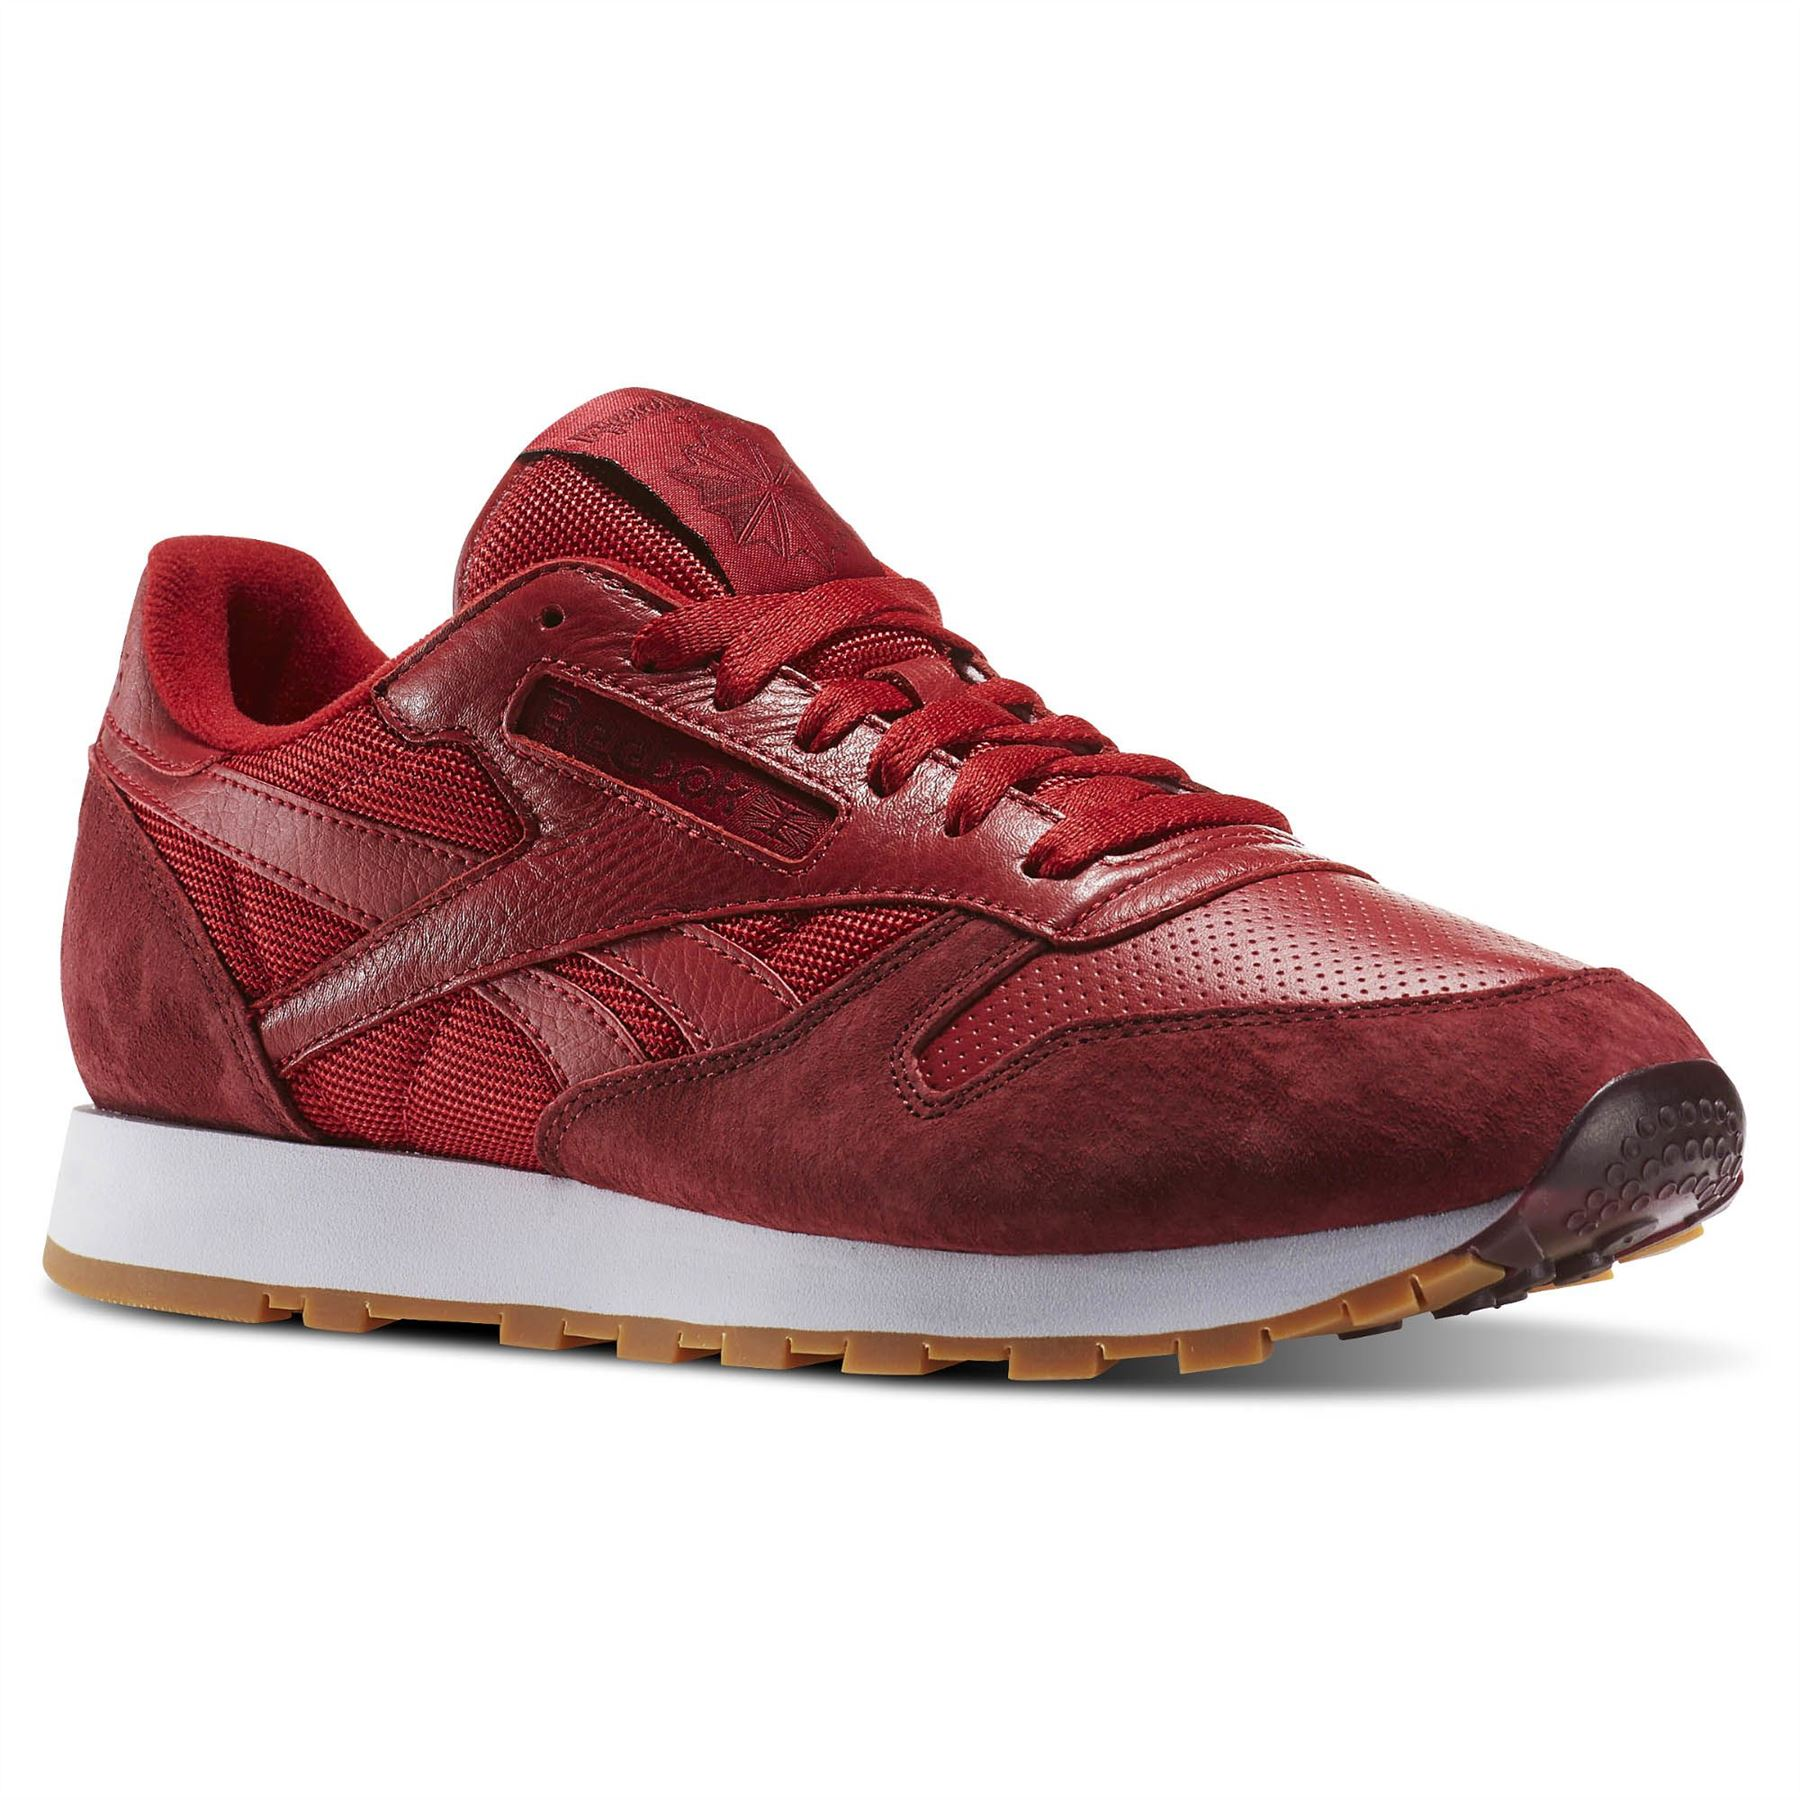 Details about Reebok Classic Leather Perfect Split Trainers Mens Red Footwear Shoes Sneakers